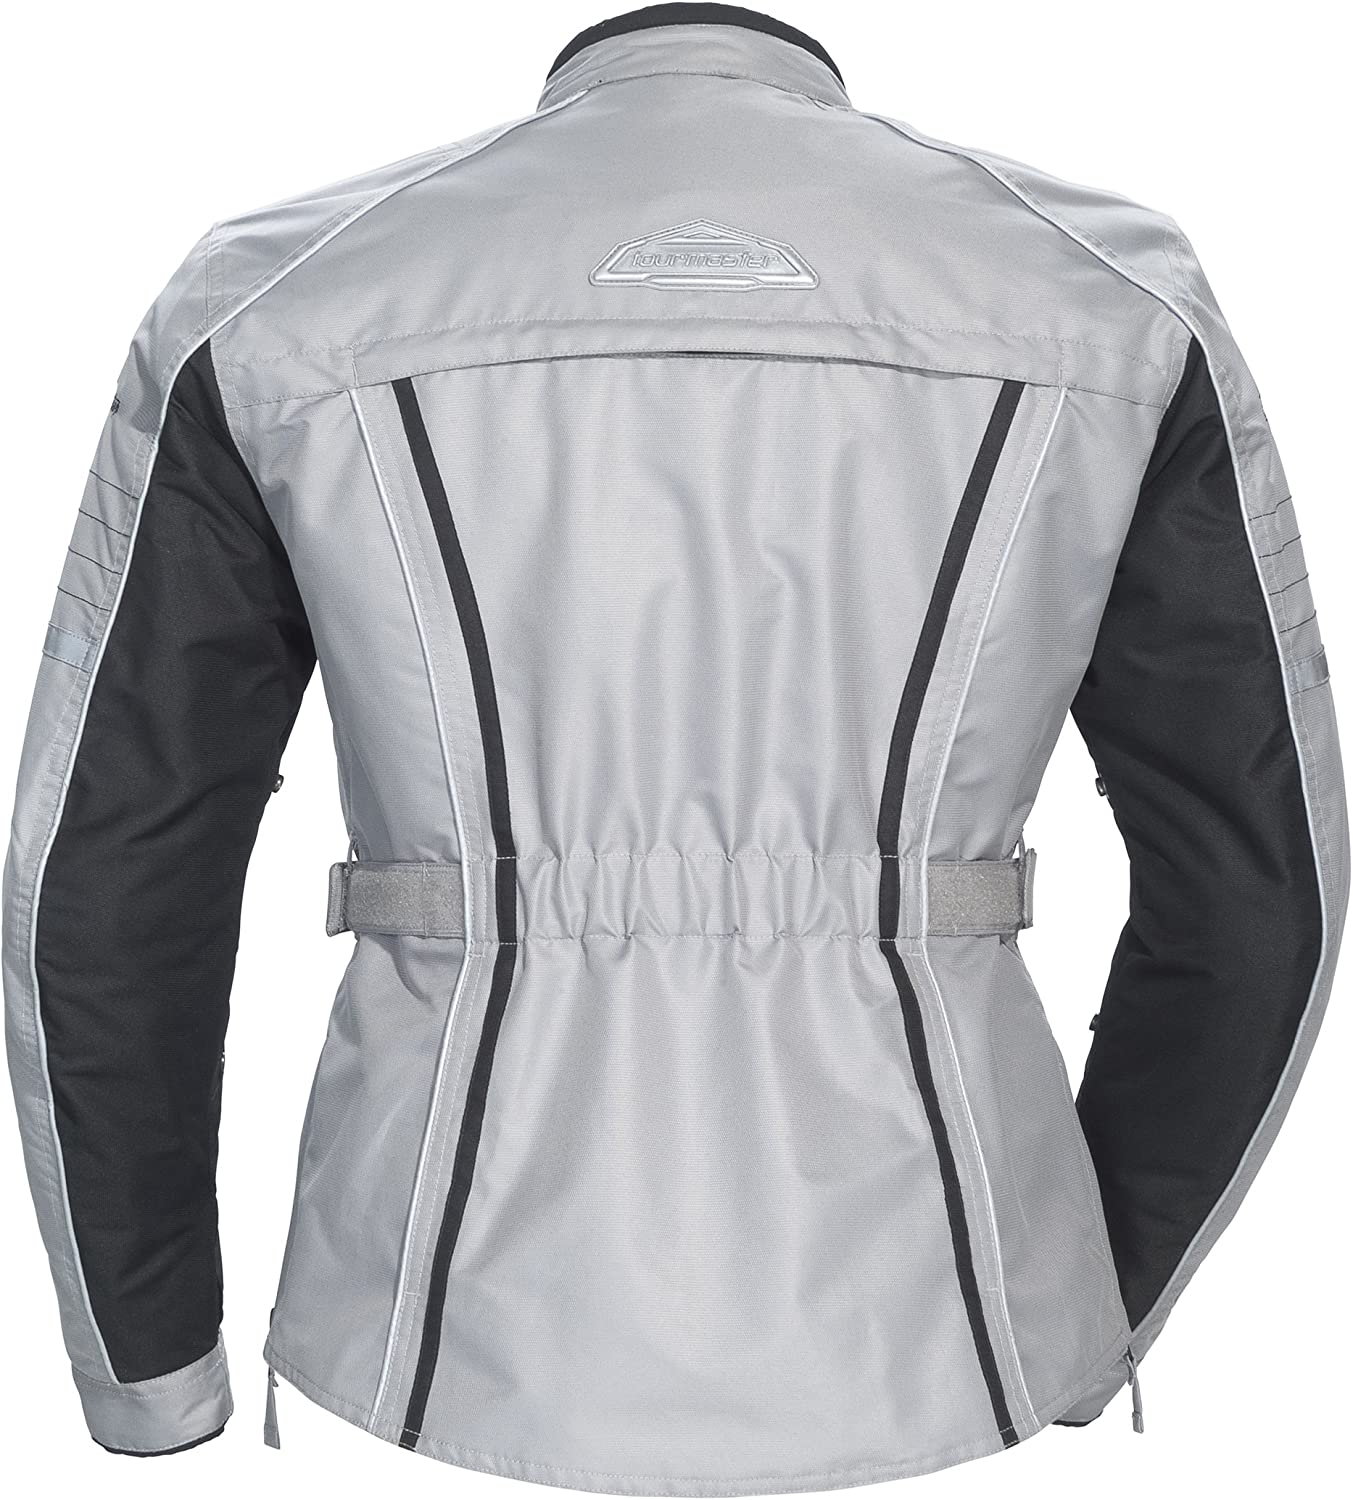 Silver Tour Master Trinity 3.0 Womens Street Racing Motorcycle Textile Jacket Plus Small